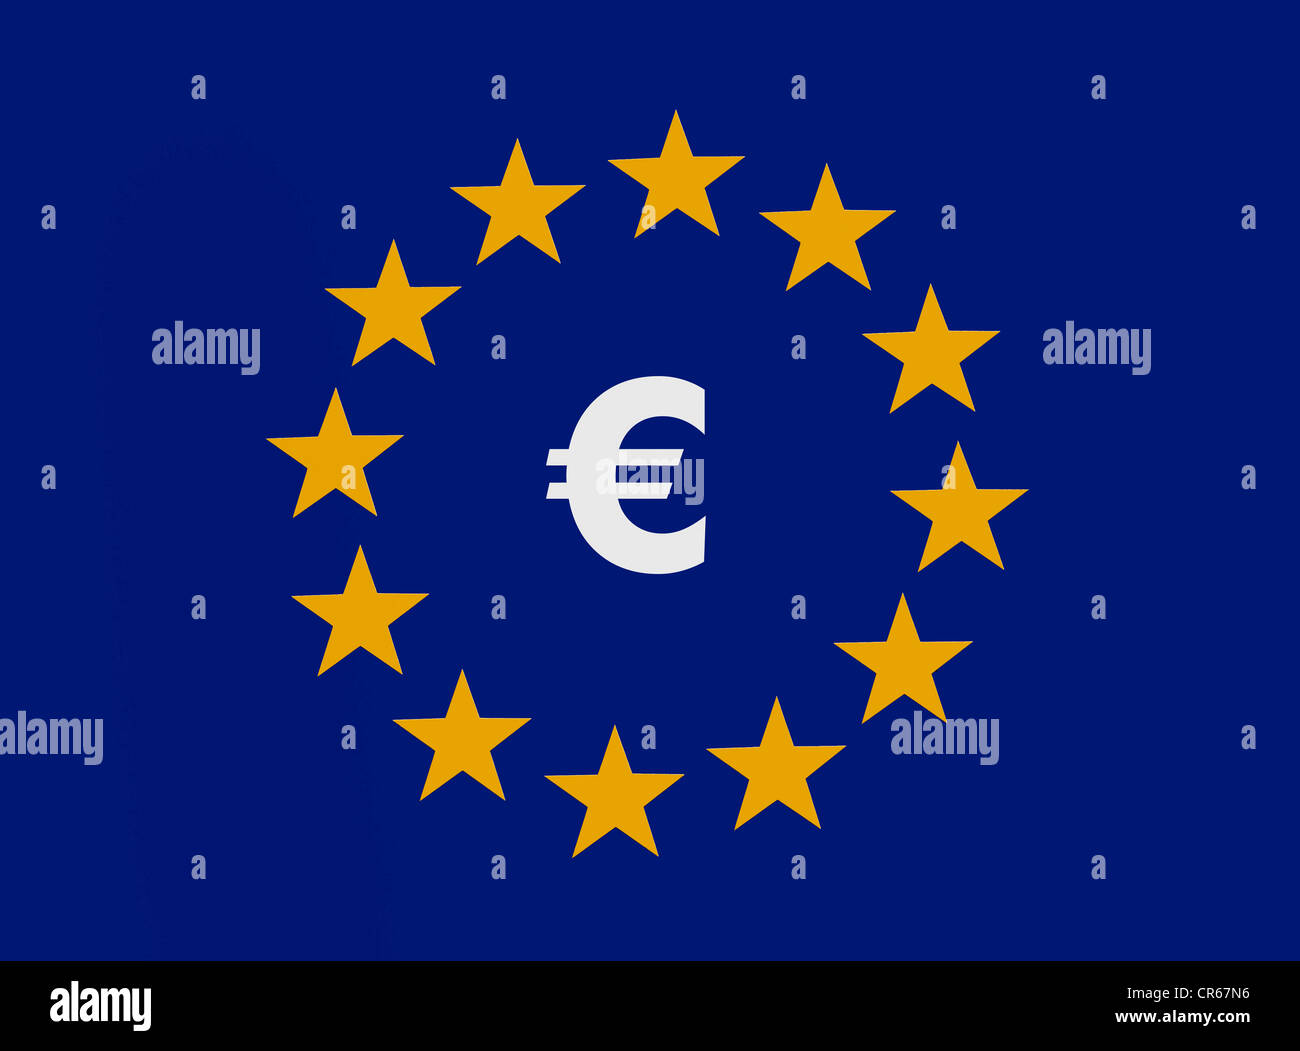 Euro symbol within the 12 stars of the European Union, European common currency, monetary union - Stock Image